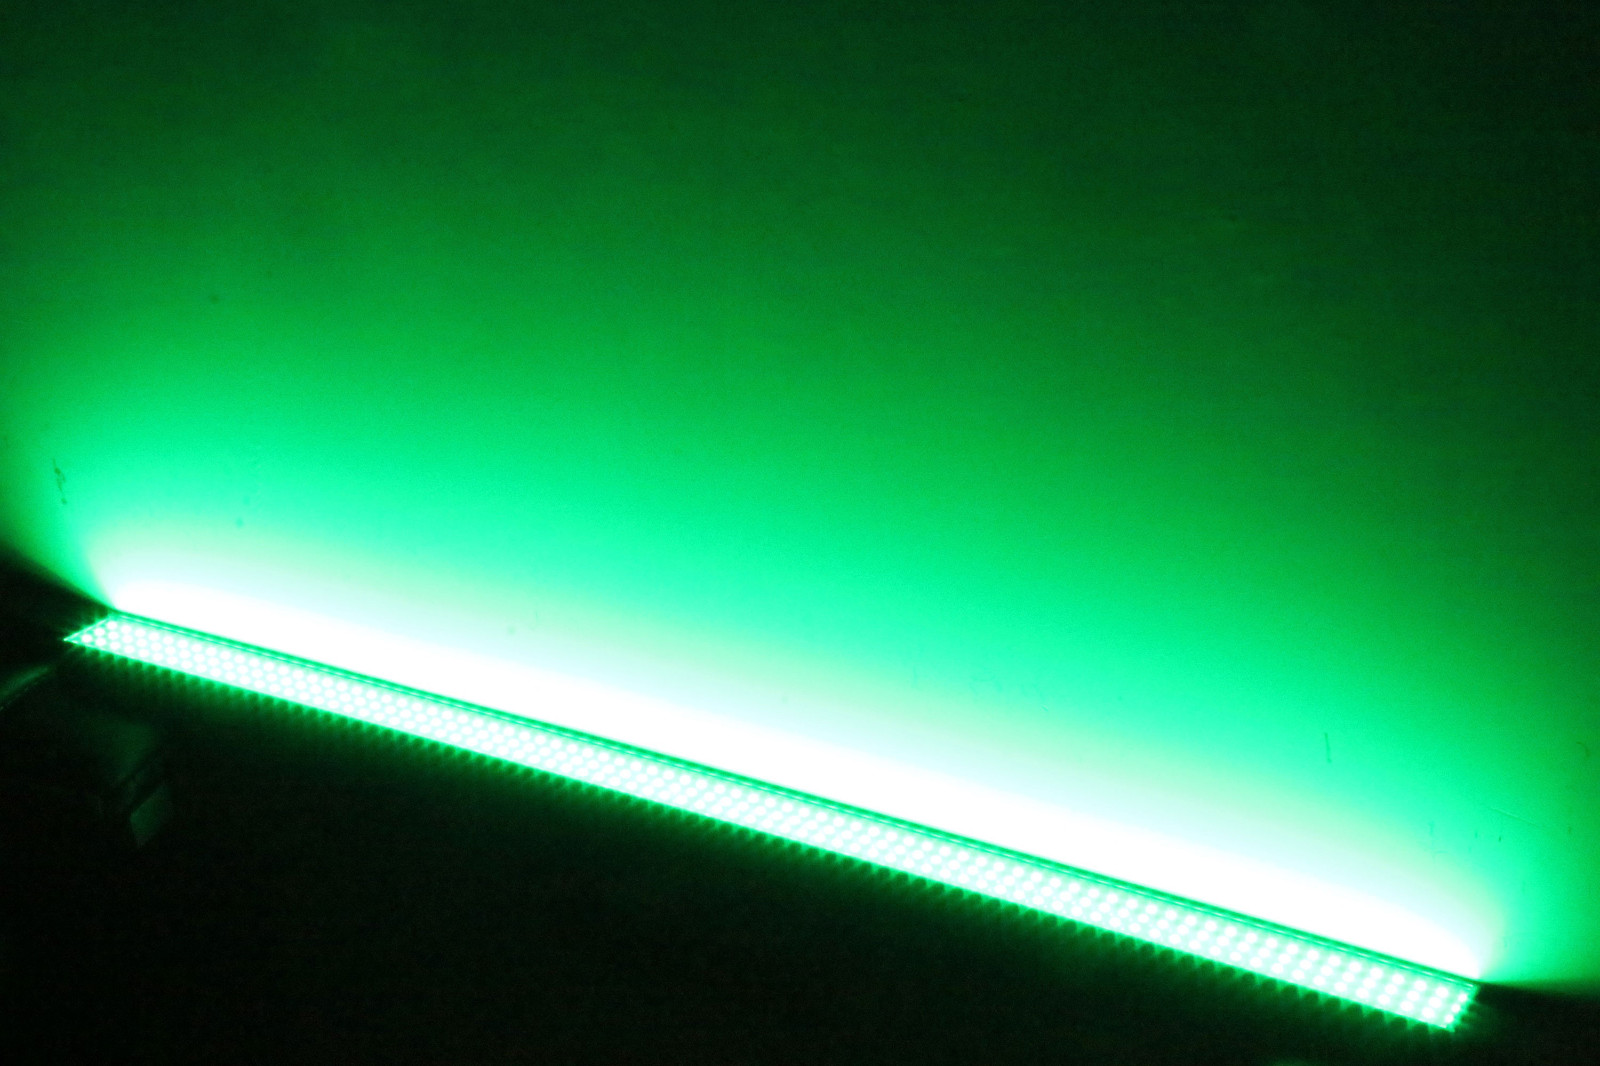 Marslite pixel led wash light bar to decorative for party-5